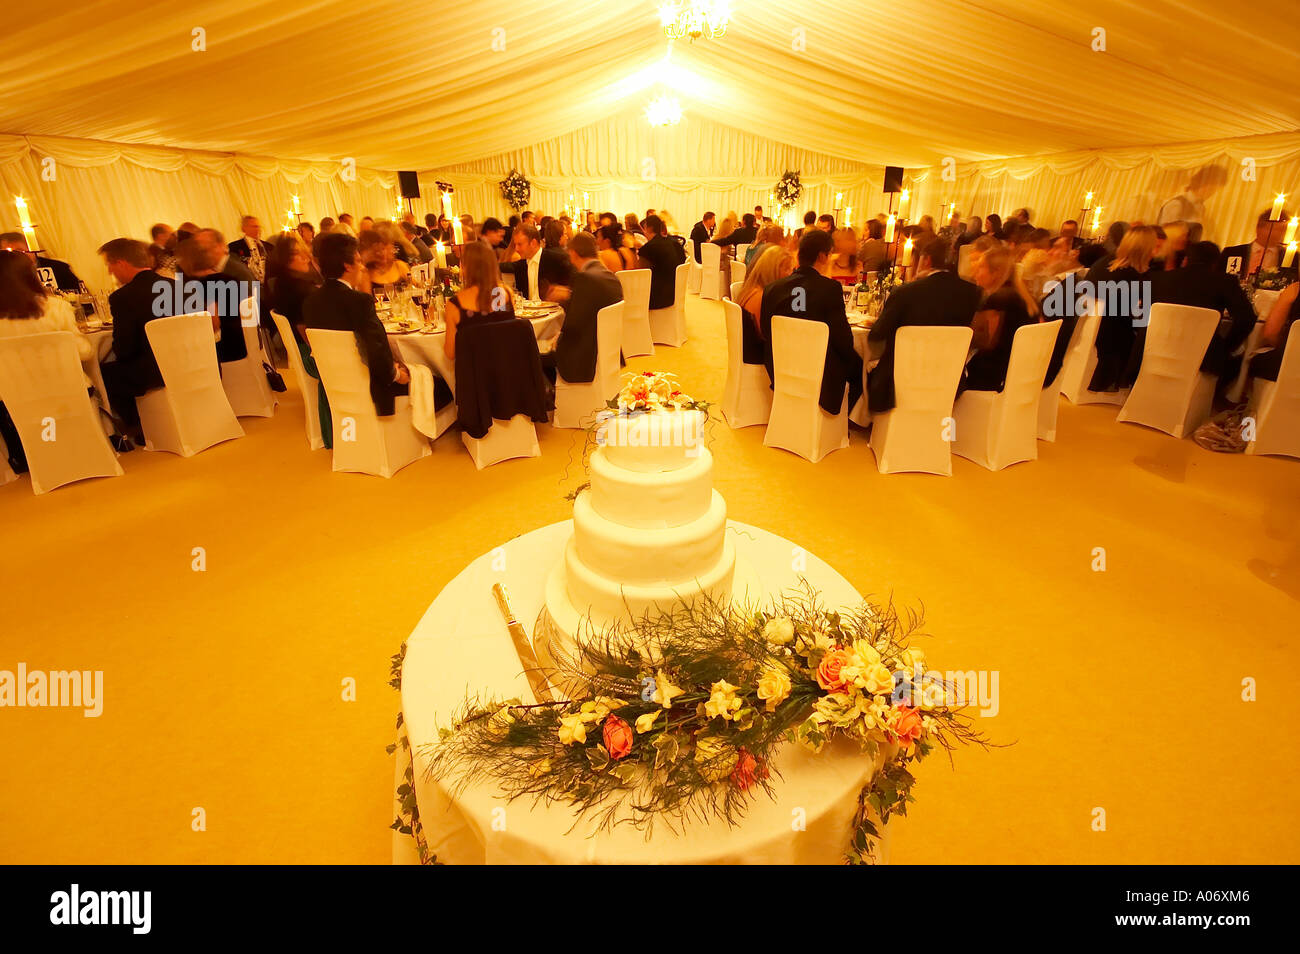 Classic Wedding Cake Groom Bride Stock Photos & Classic Wedding Cake ...